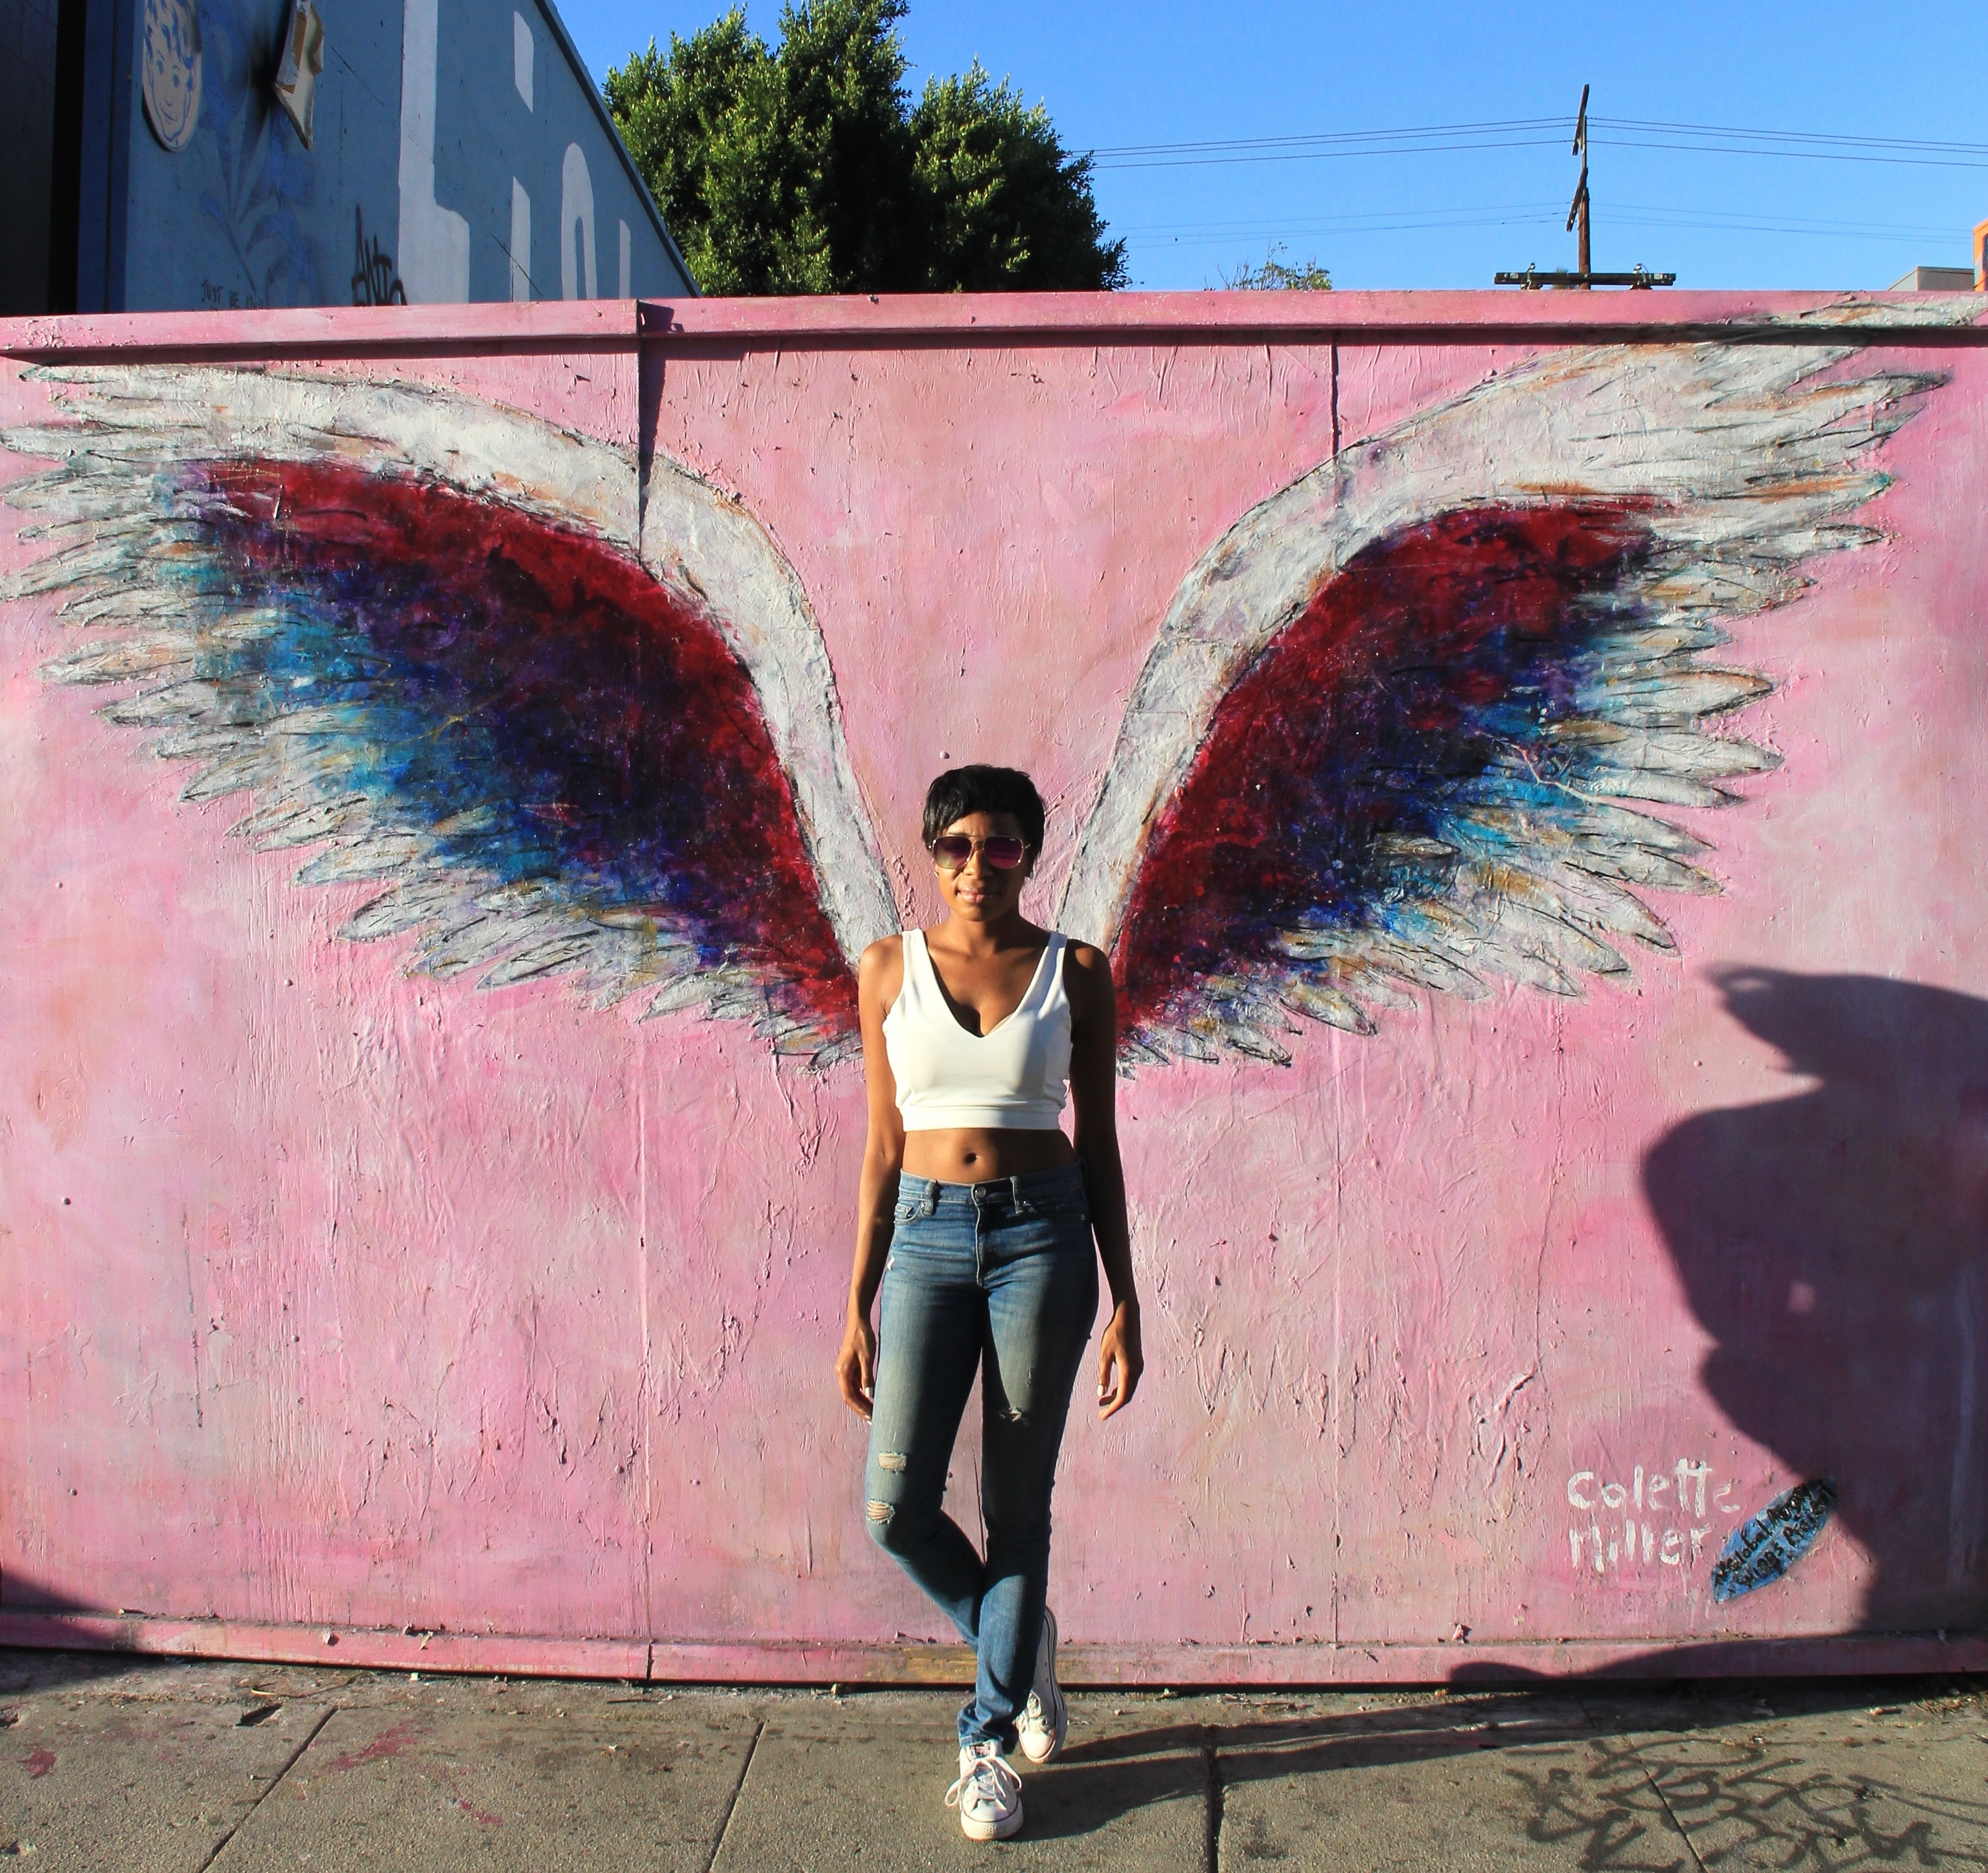 5 Insta Worthy Walls On Melrose Ave In Los Angeles – Throughout Los Angeles Wall Art (Photo 12 of 20)